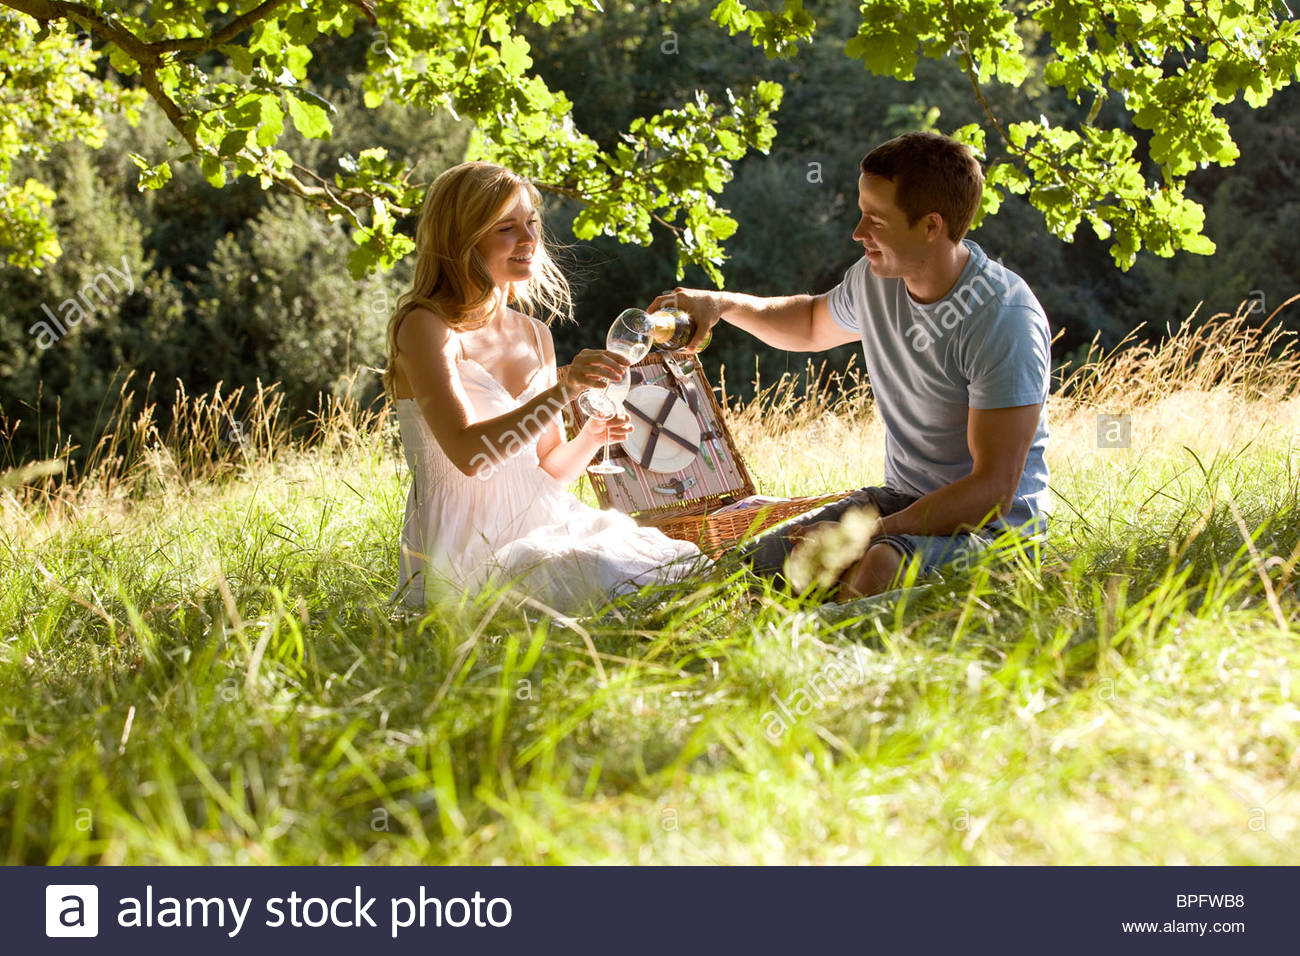 A young couple having a picnic, man pouring sparkling wine - Stock Image